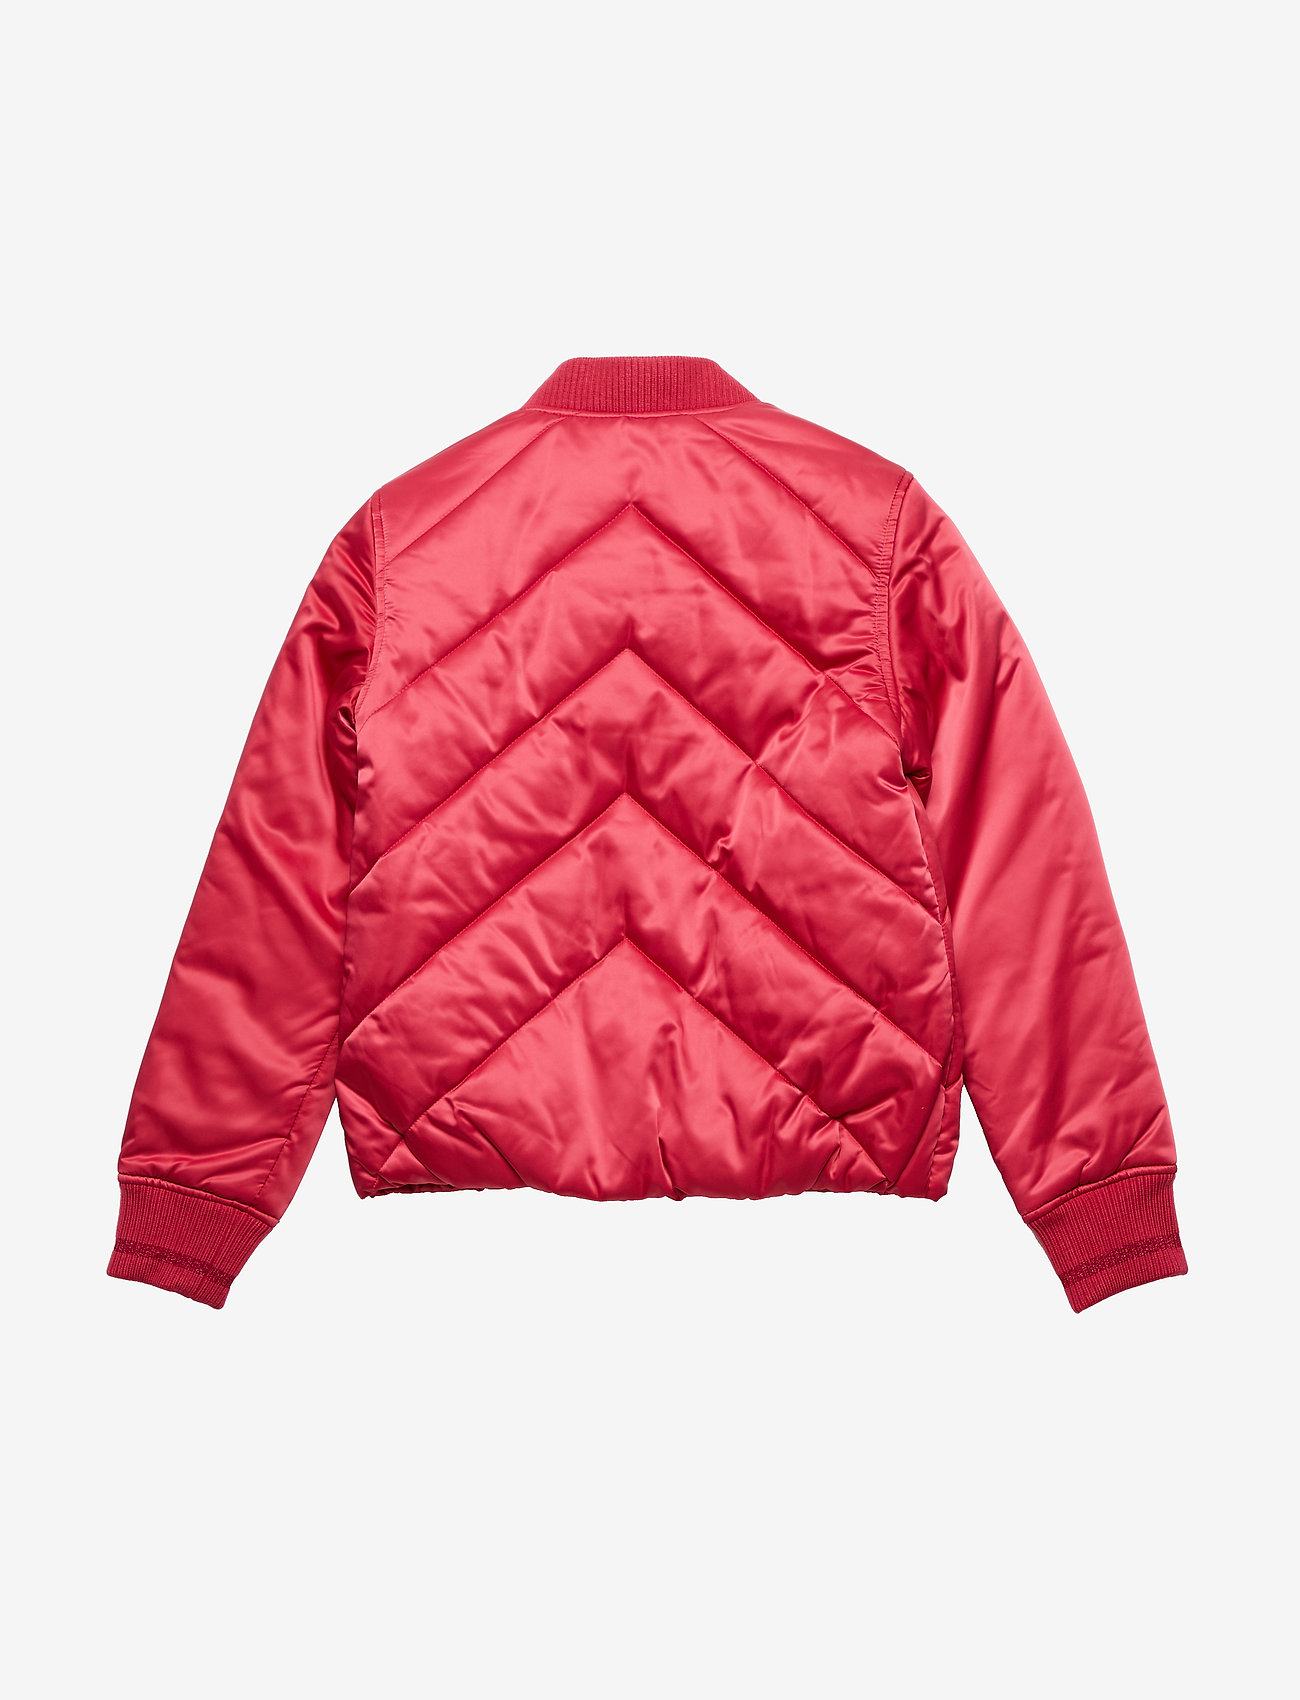 Tommy Hilfiger - ESSENTIAL QUILTED PA - bomber jackets - raspberry wine - 1